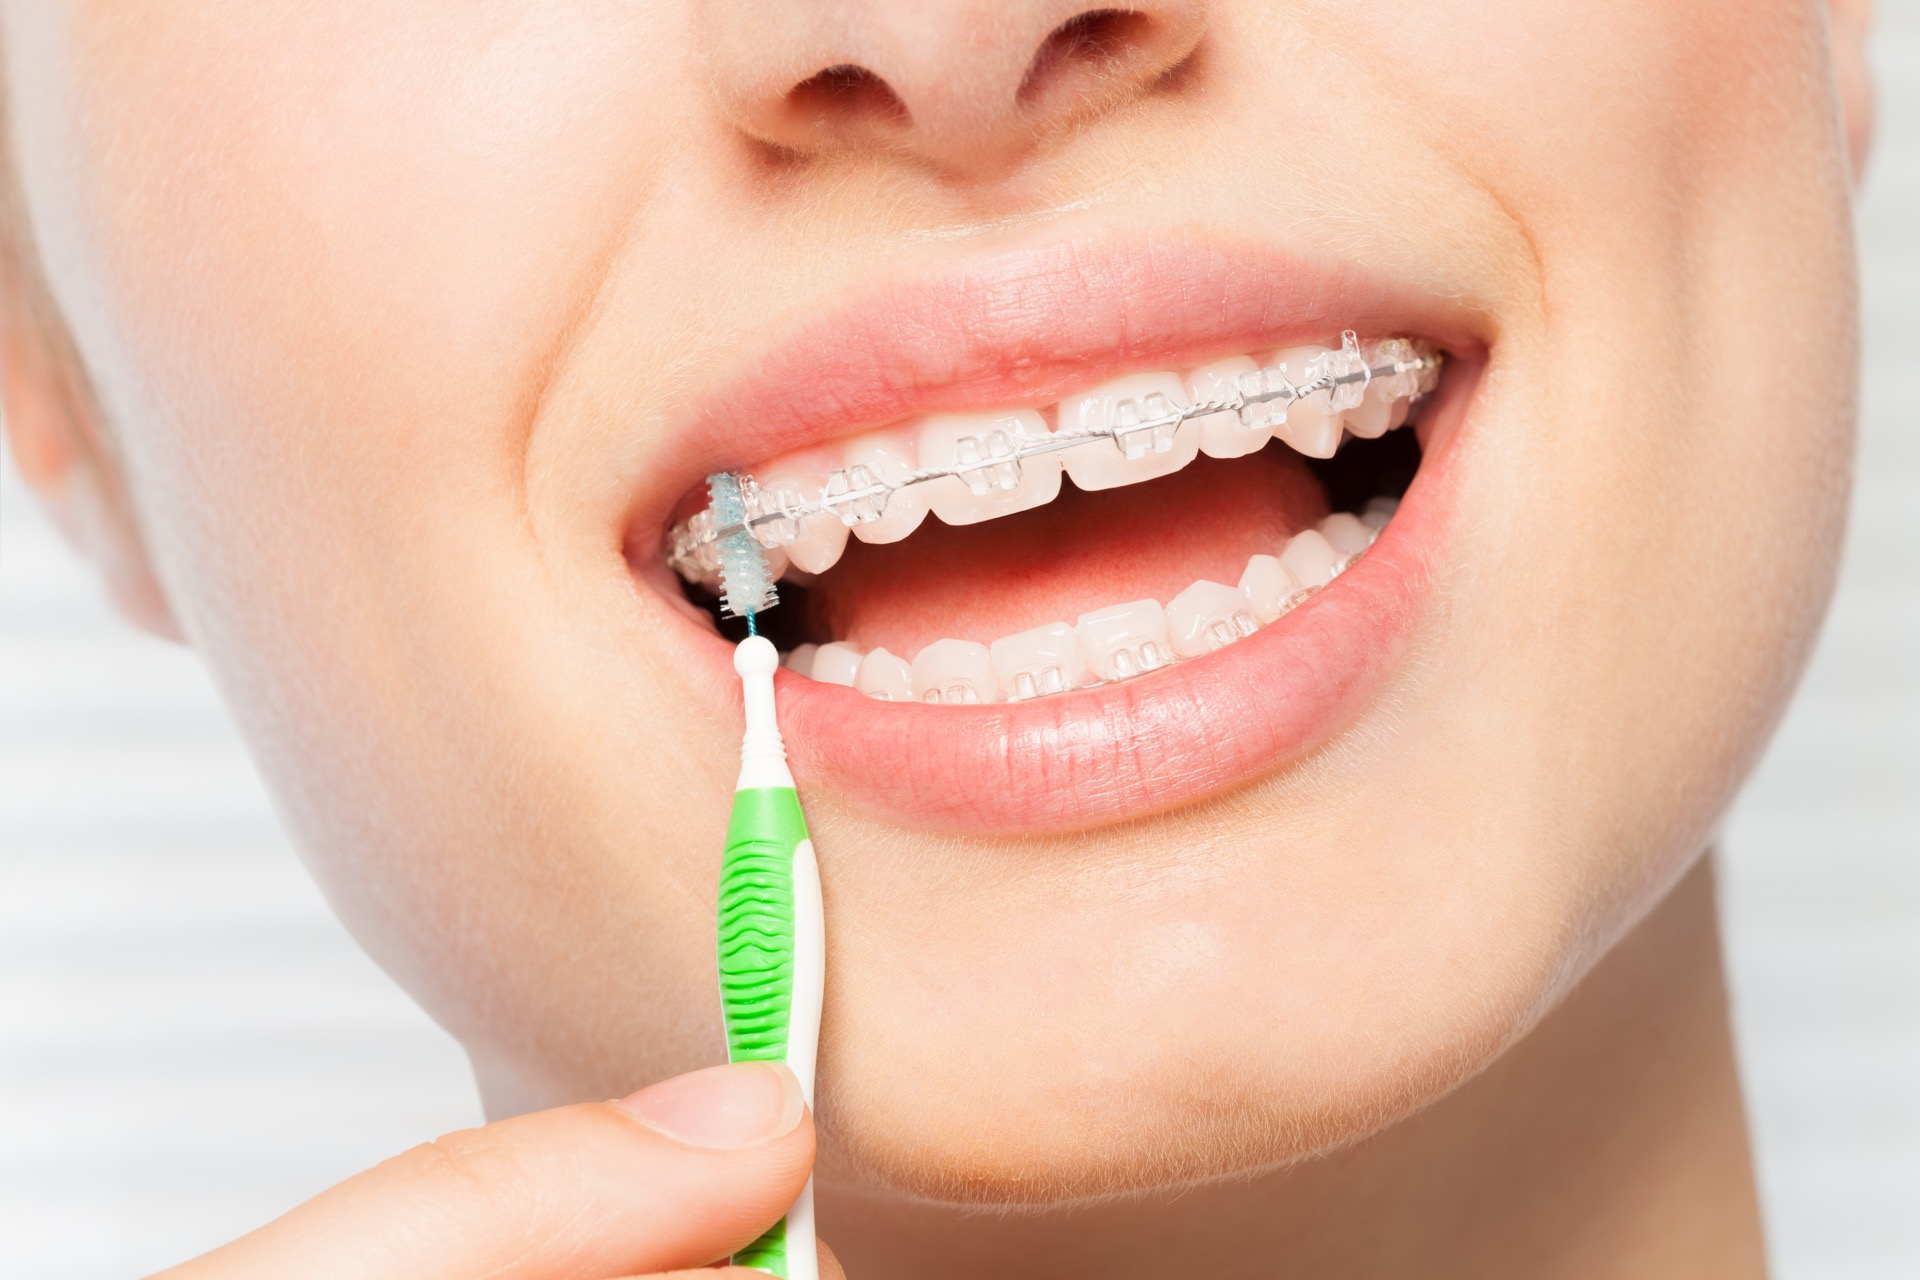 Woman properly brushing her braces to clean them